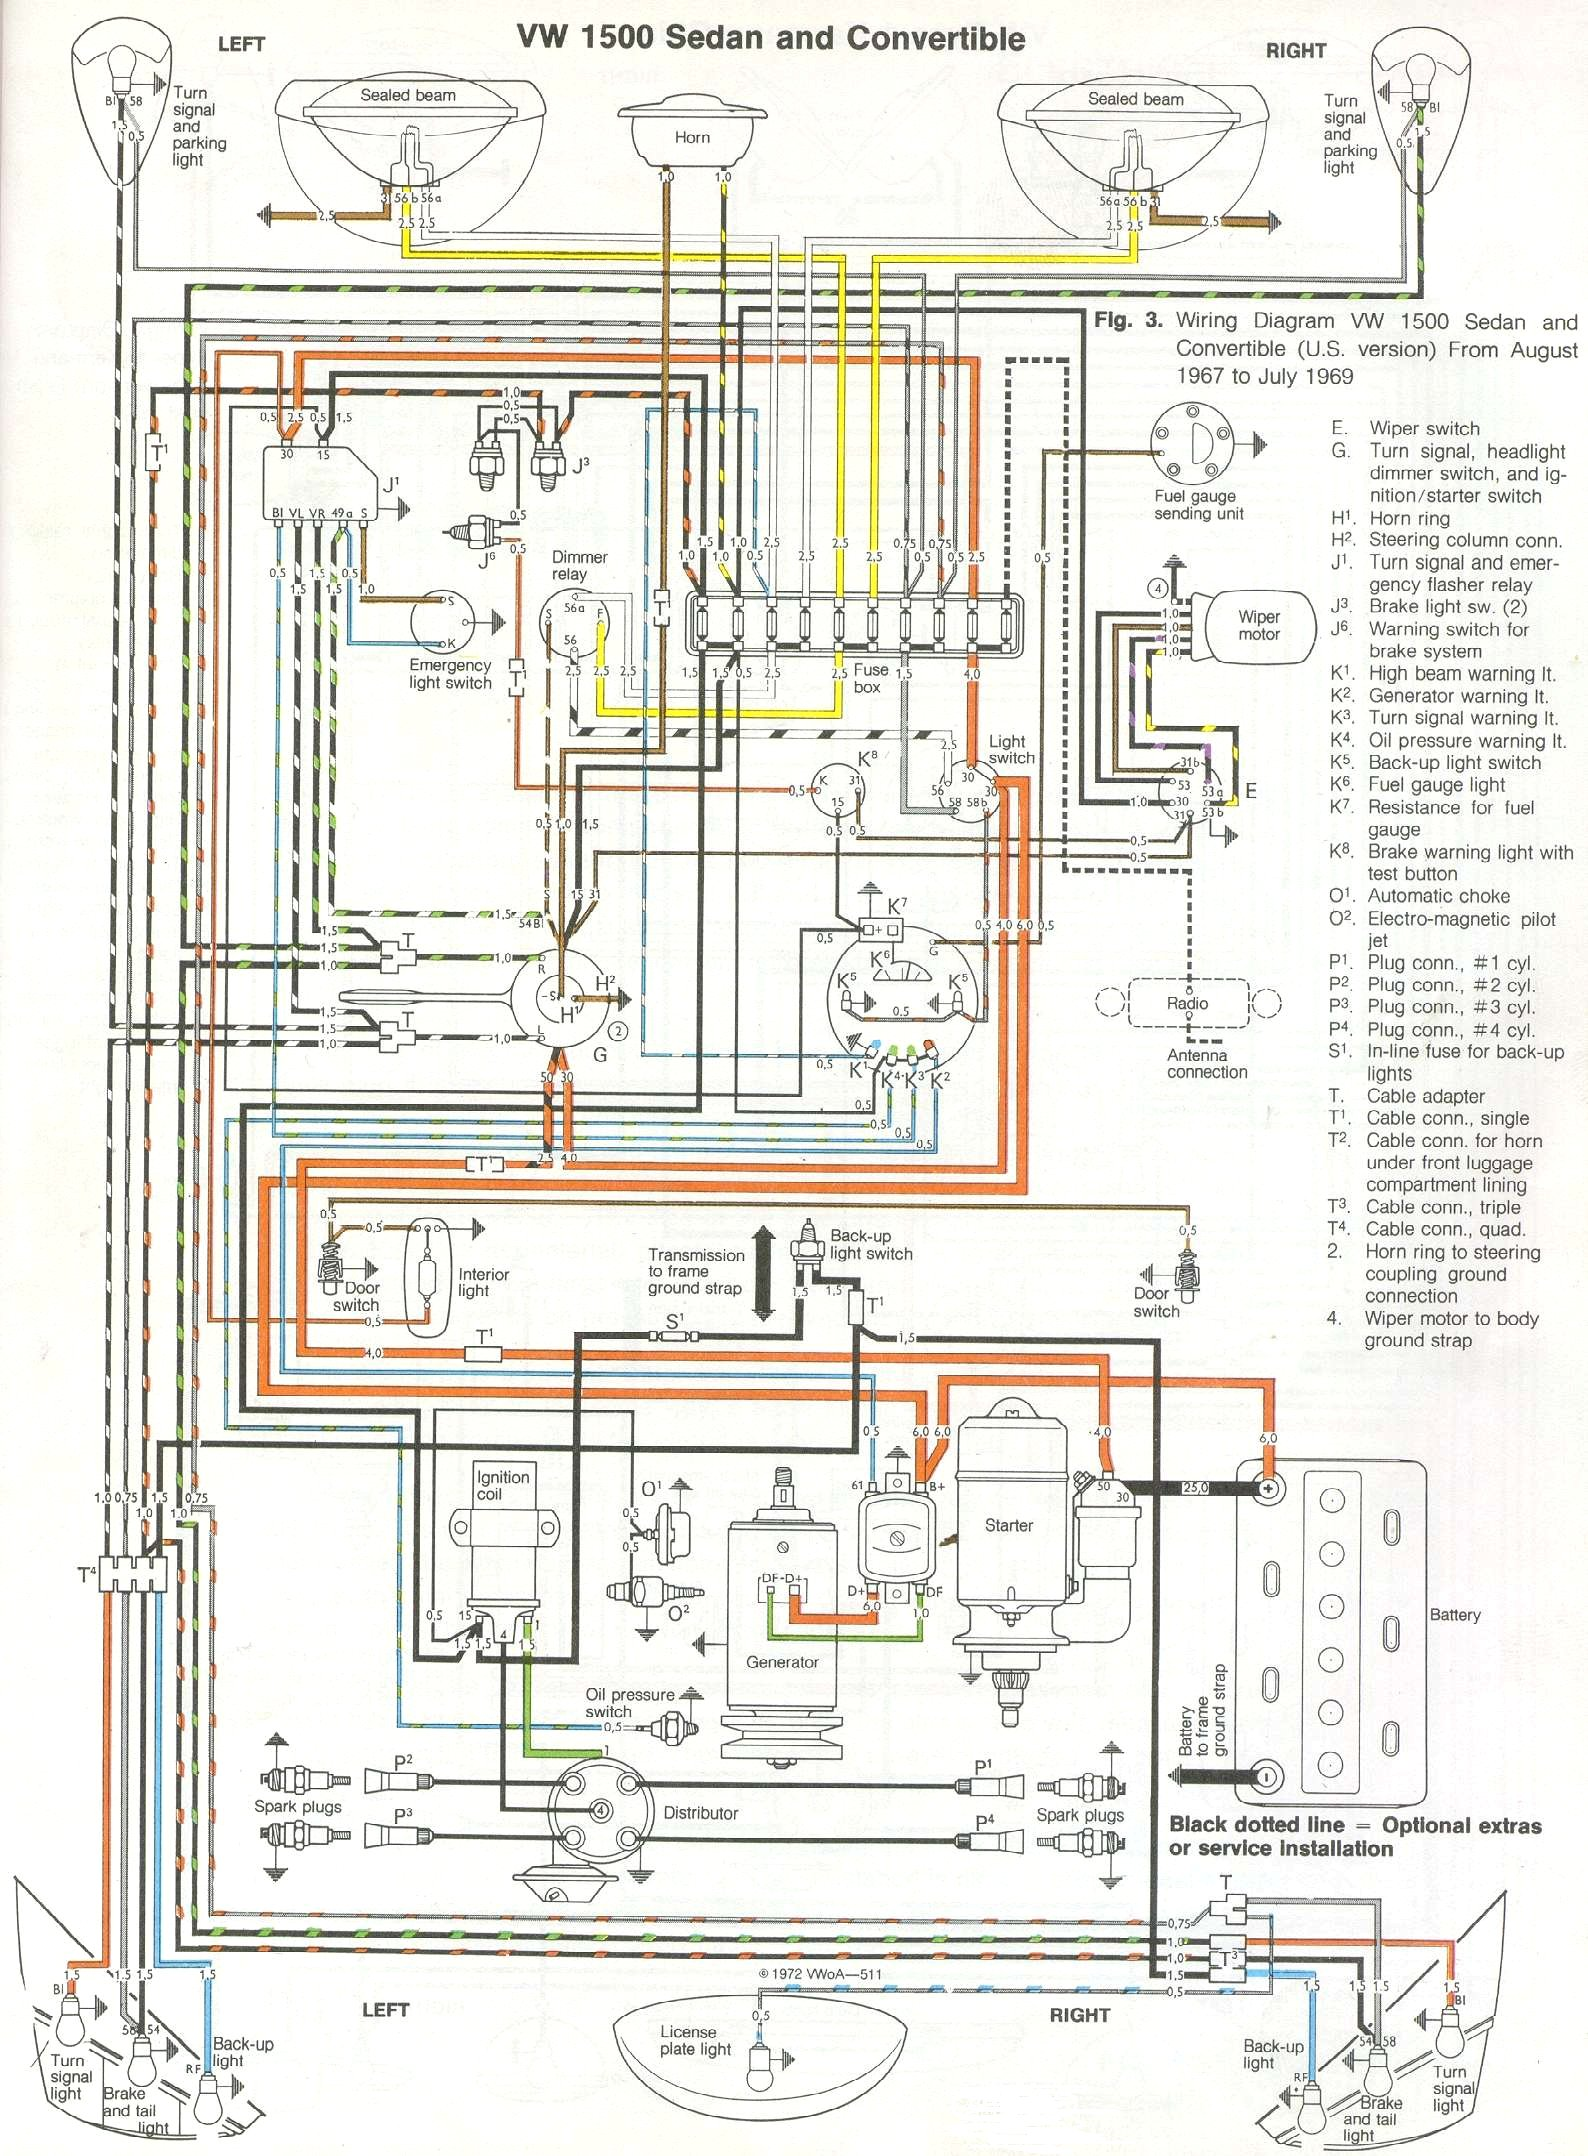 bug_6869 vw wiring harness diagram cj7 wiring harness diagram \u2022 wiring 1971 vw bus wiring diagram at crackthecode.co